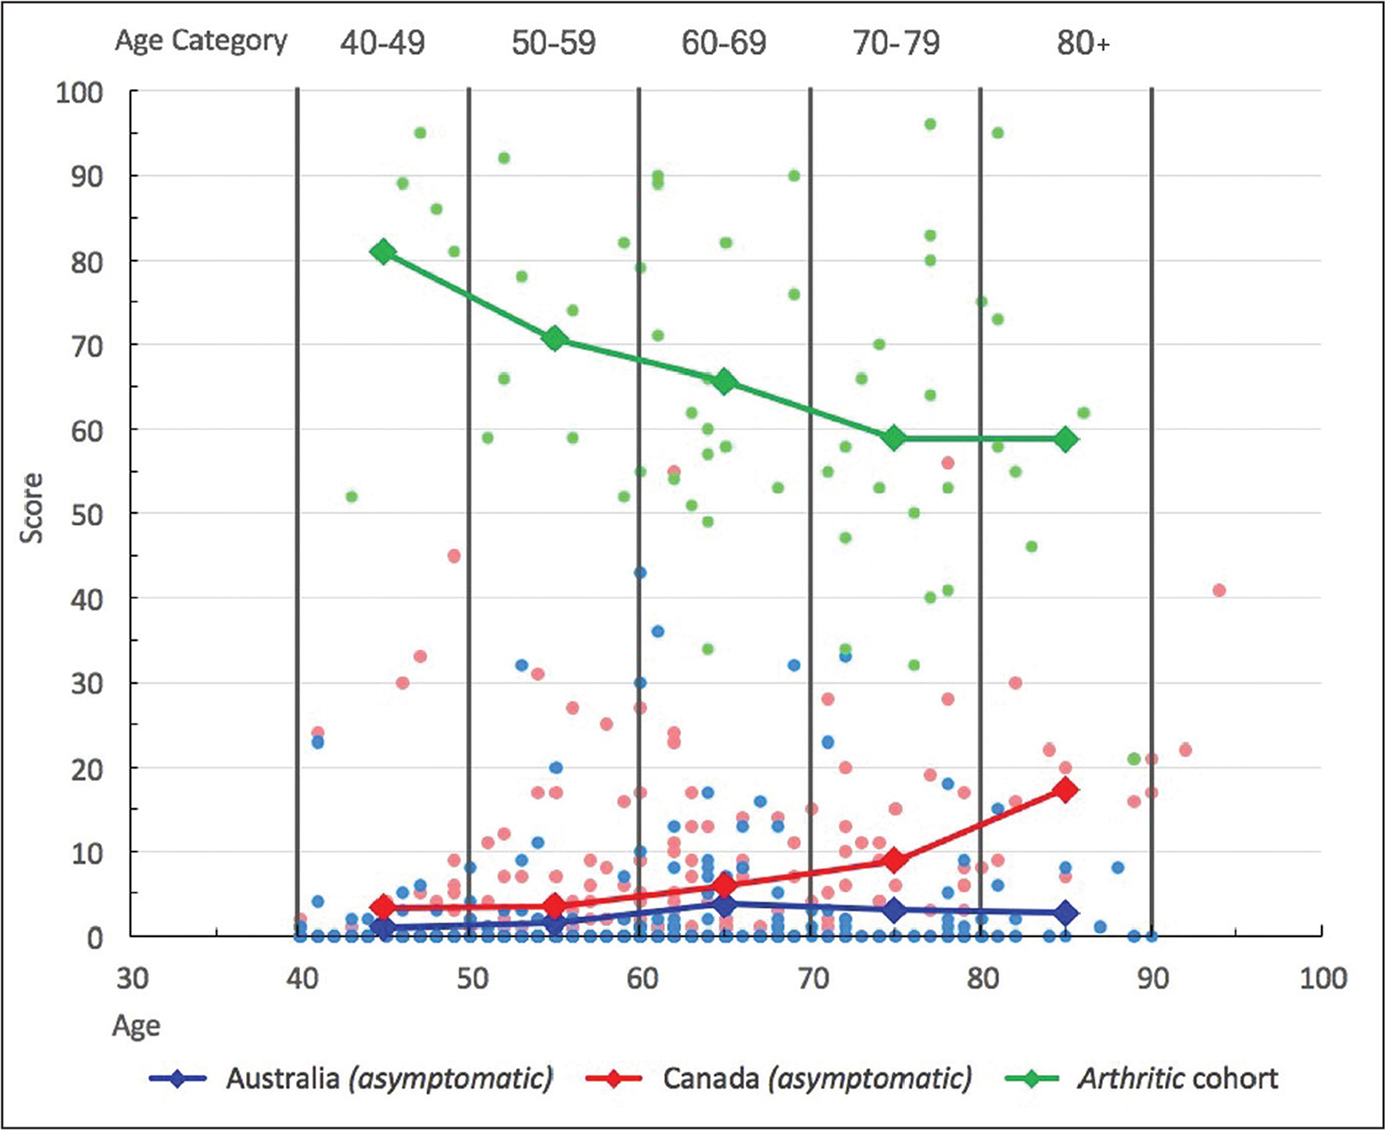 Scattergram showing Western Ontario and McMaster Universities Osteoarthritis Index score for each age group among asymptomatic Australian participants (blue), asymptomatic Canadian participants (red), and arthritic cohort (green). Higher scores indicate worse pain, stiffness, and function.